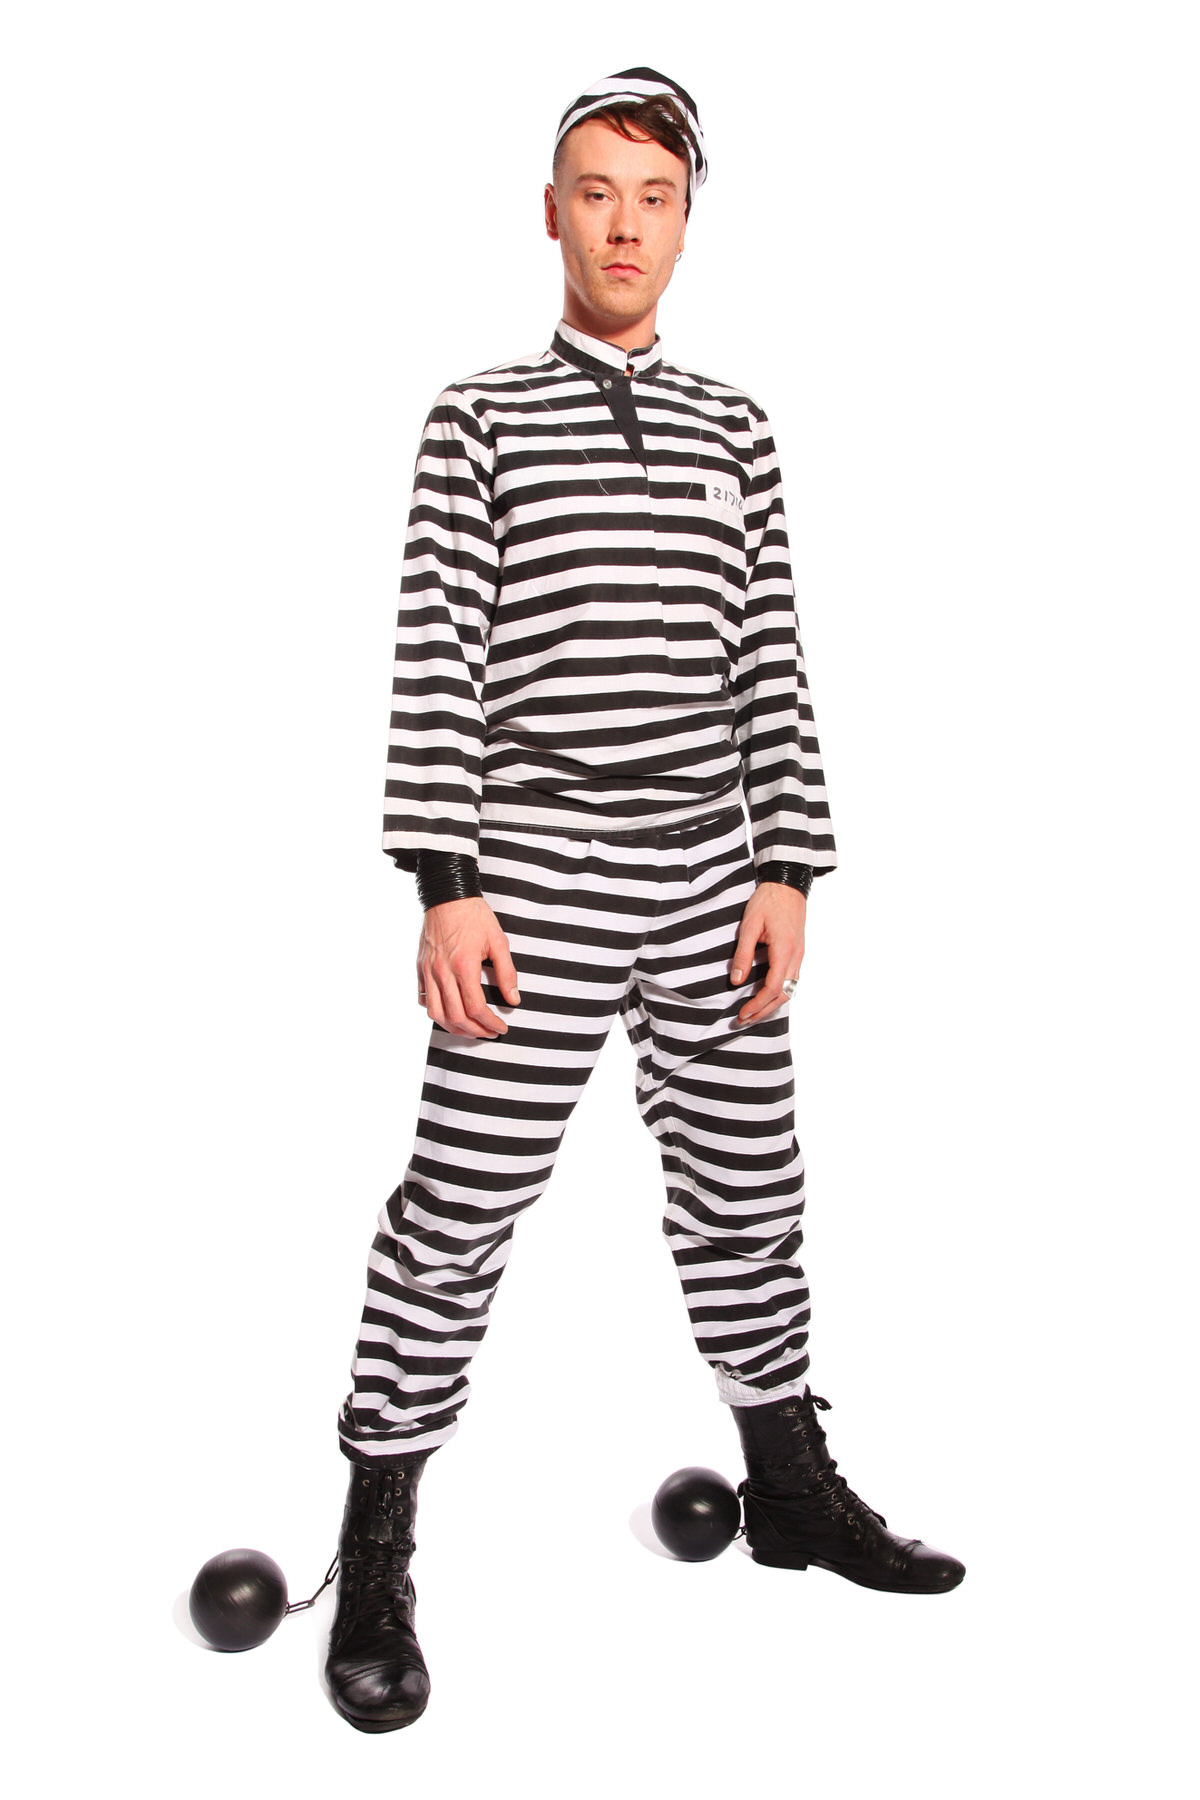 PRISONER STRIPED COSTUME W BALL AND CHAIN